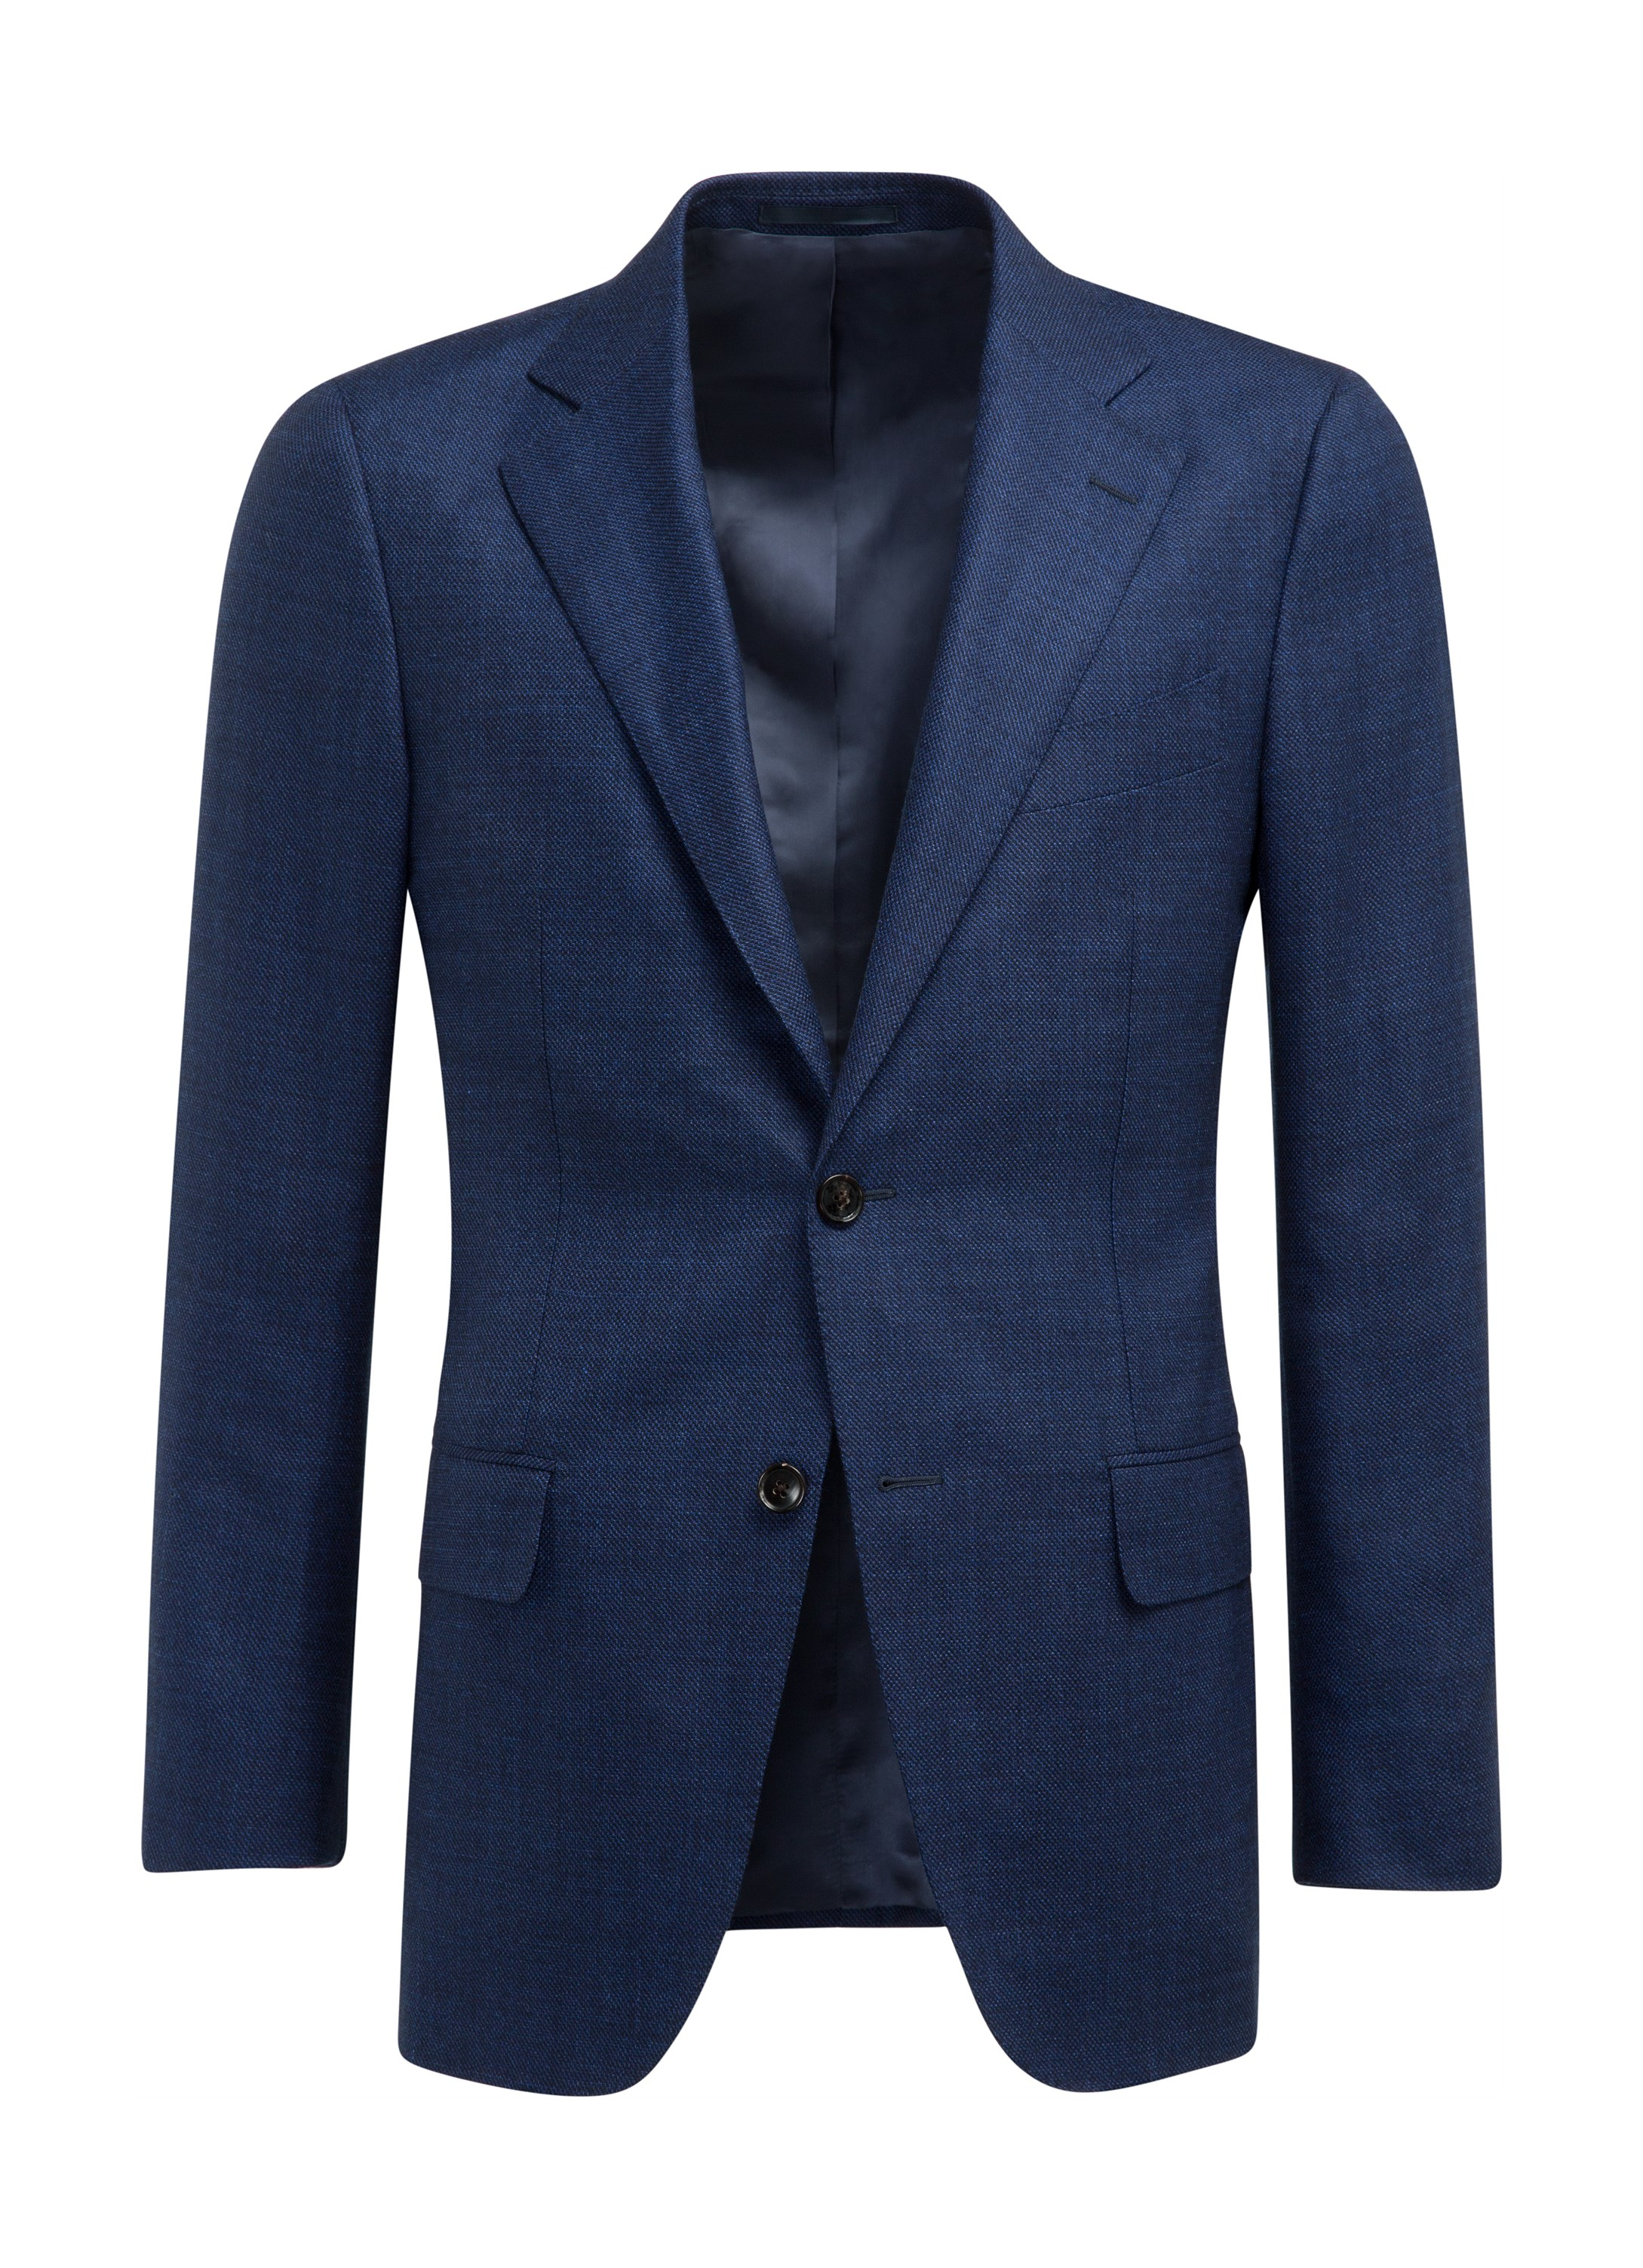 Thoughts on this navy jacket